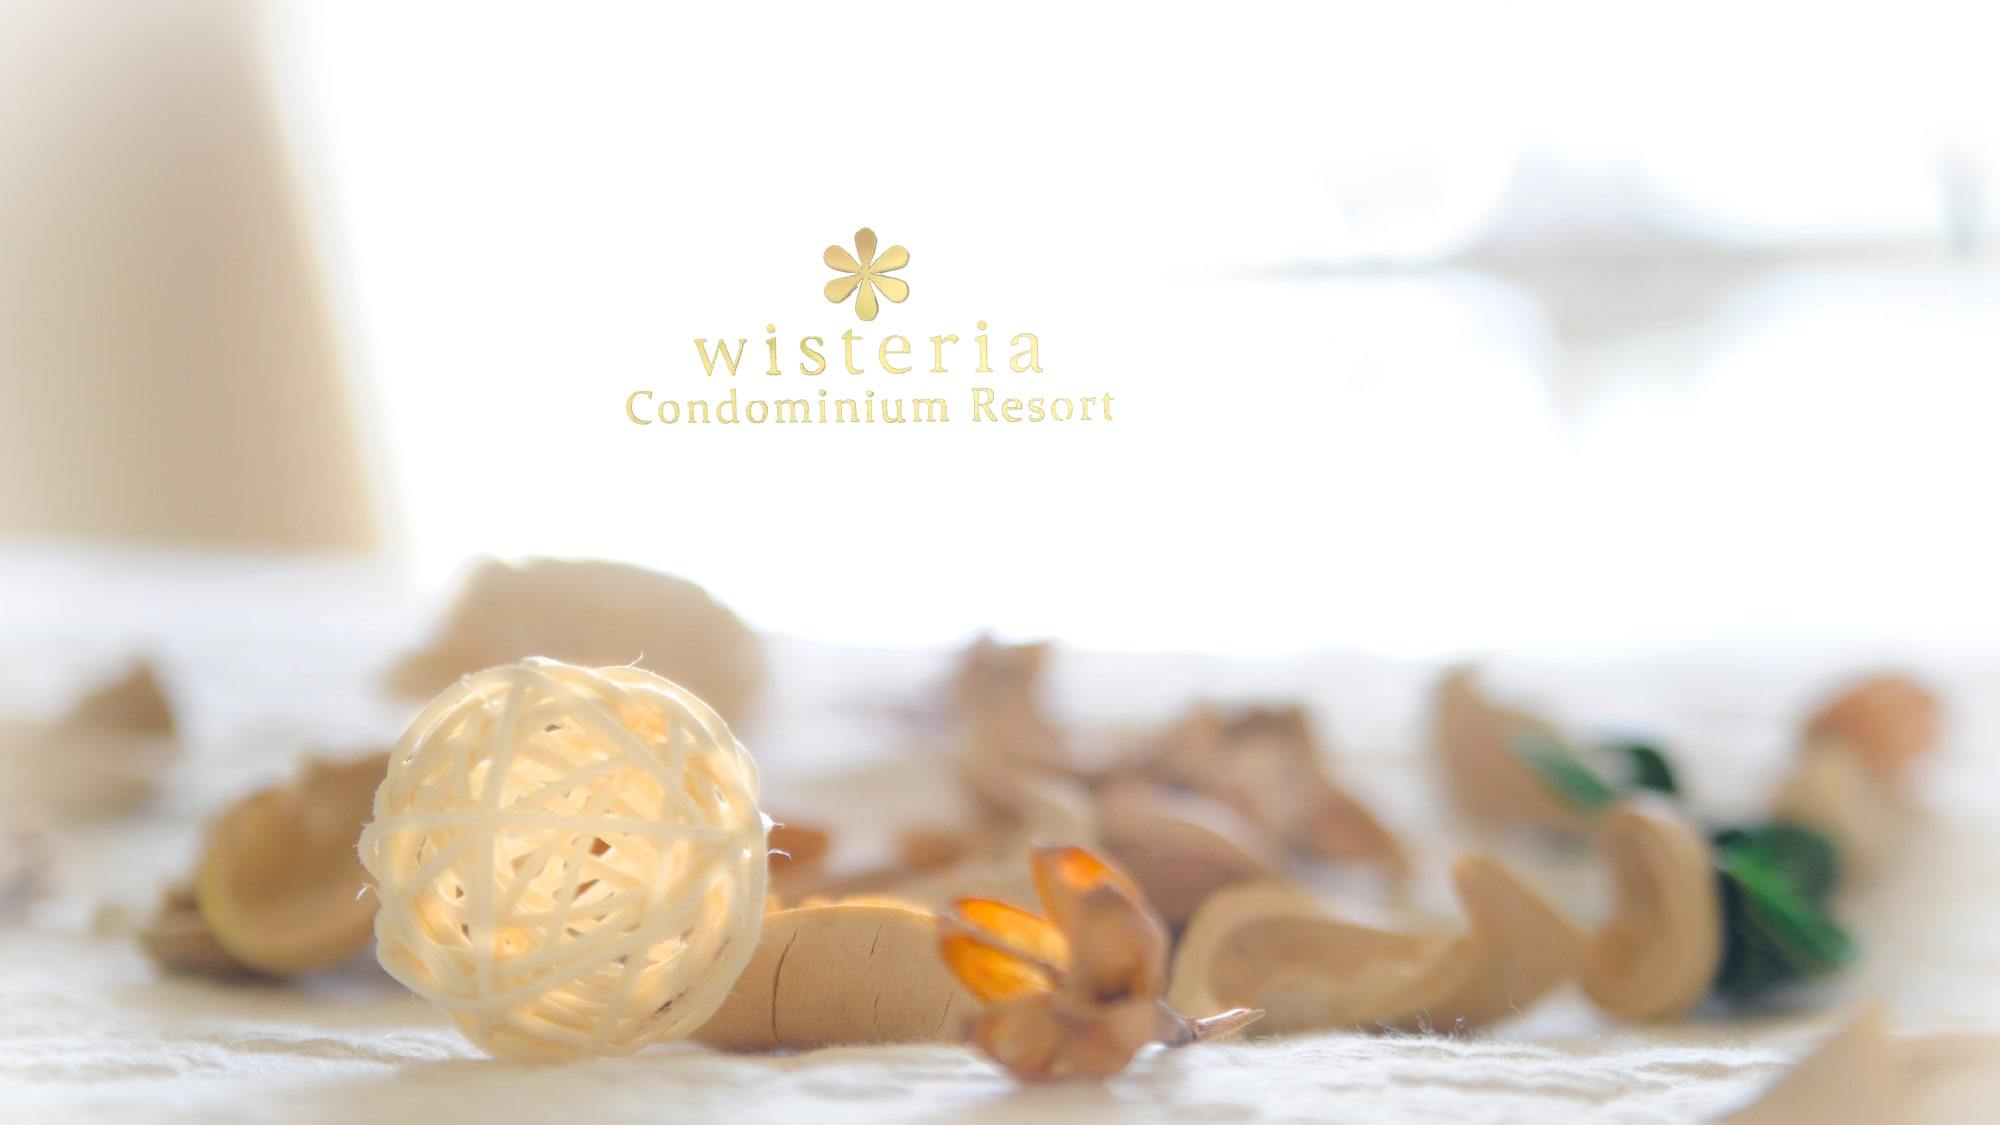 Welcome to Wisteria Condominium Resort